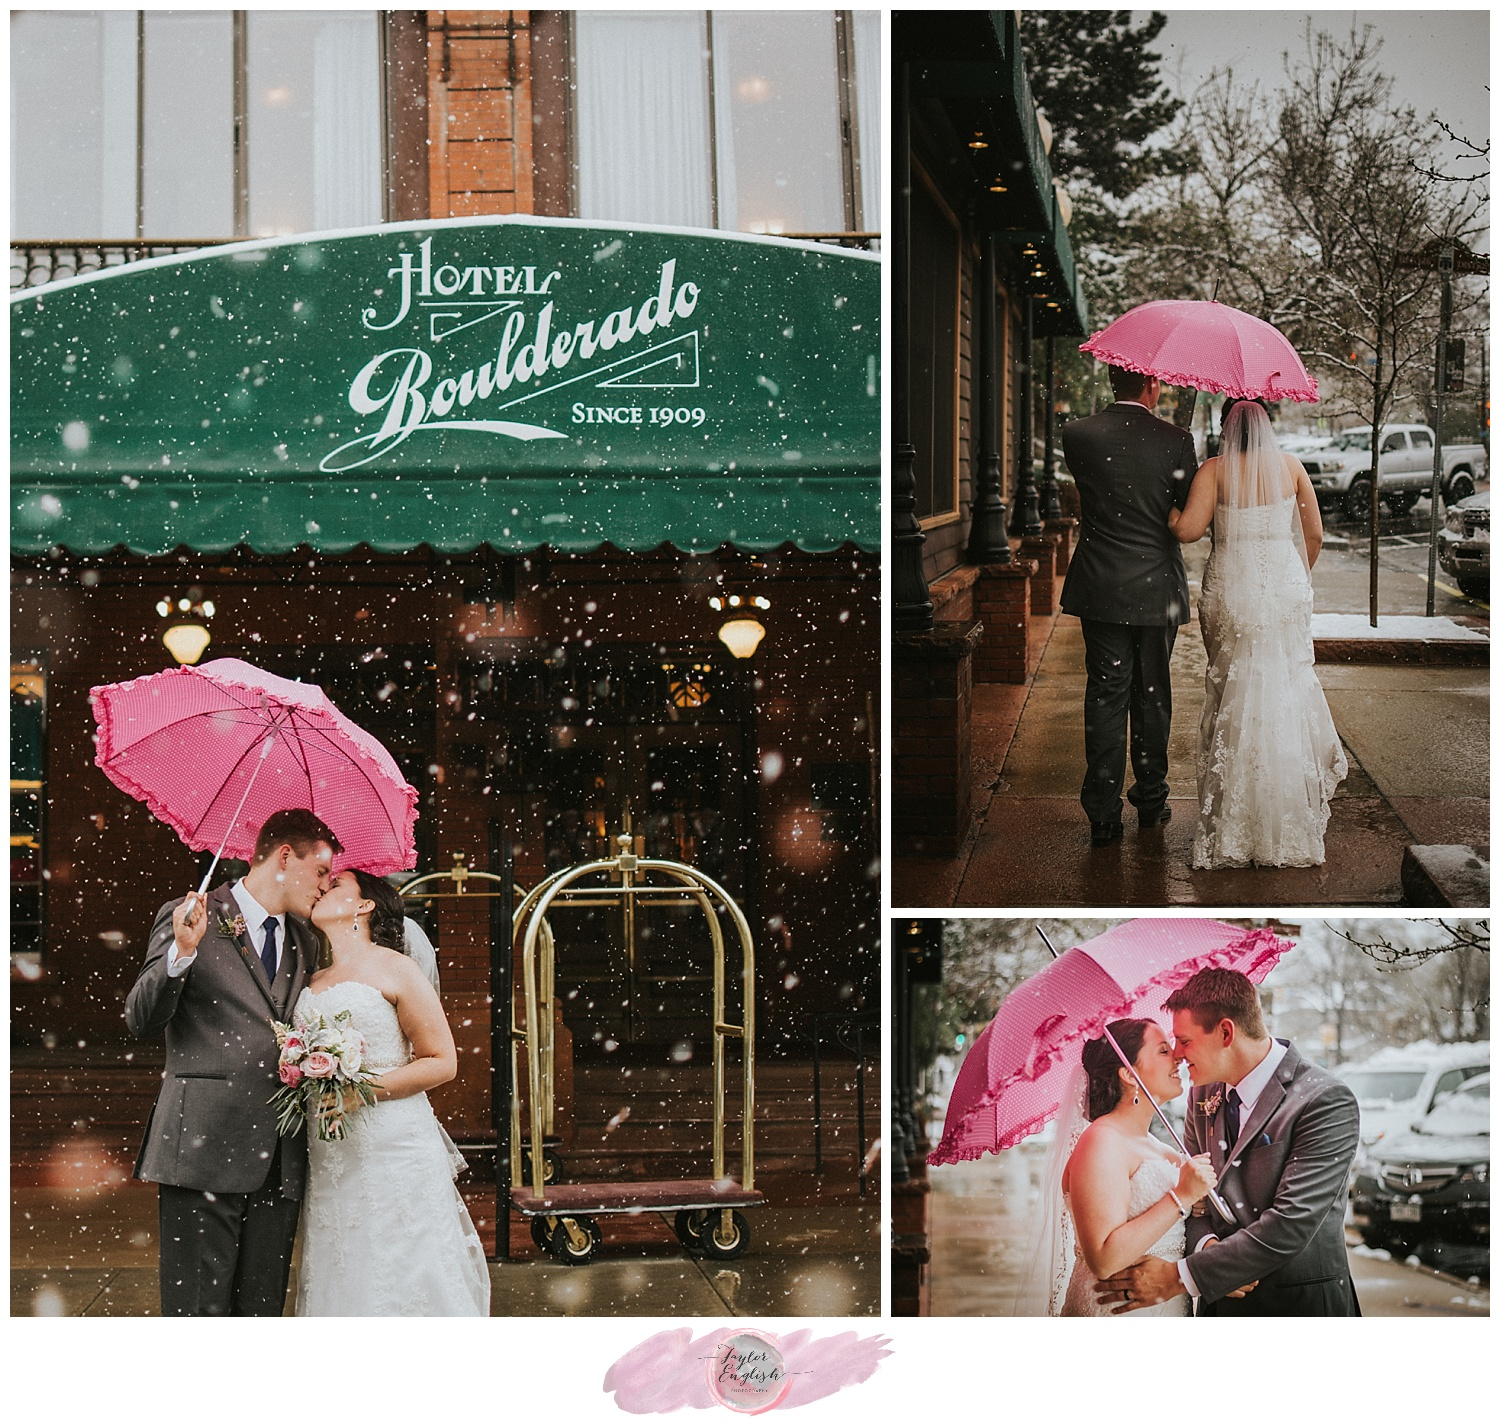 Giant snowflakes, pink frilly umbrellas, and a new husband and wife